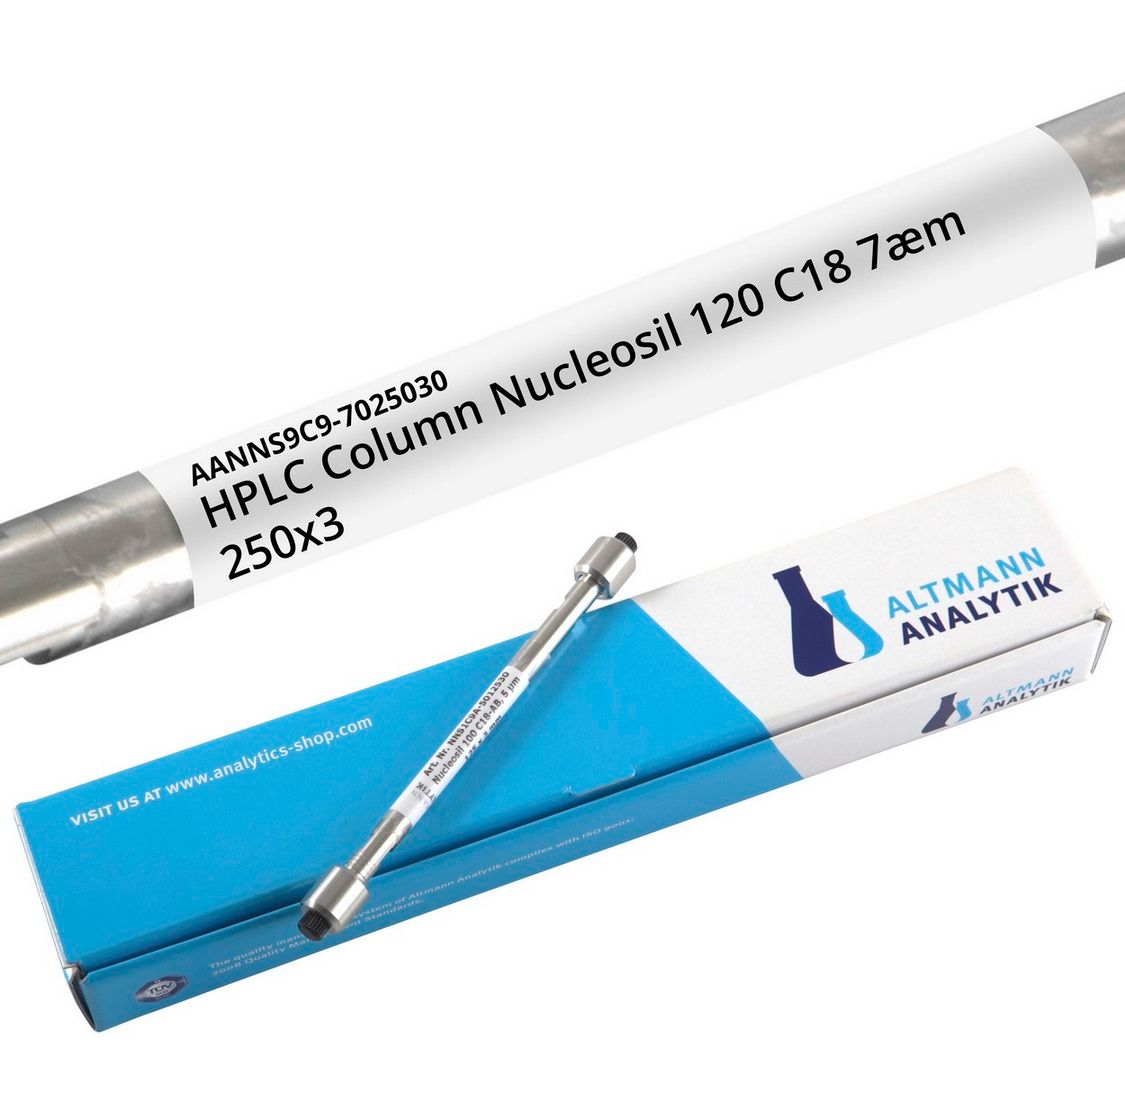 HPLC Column Nucleosil 120 C18 7µm 250x3 mm, endcapped, 120A